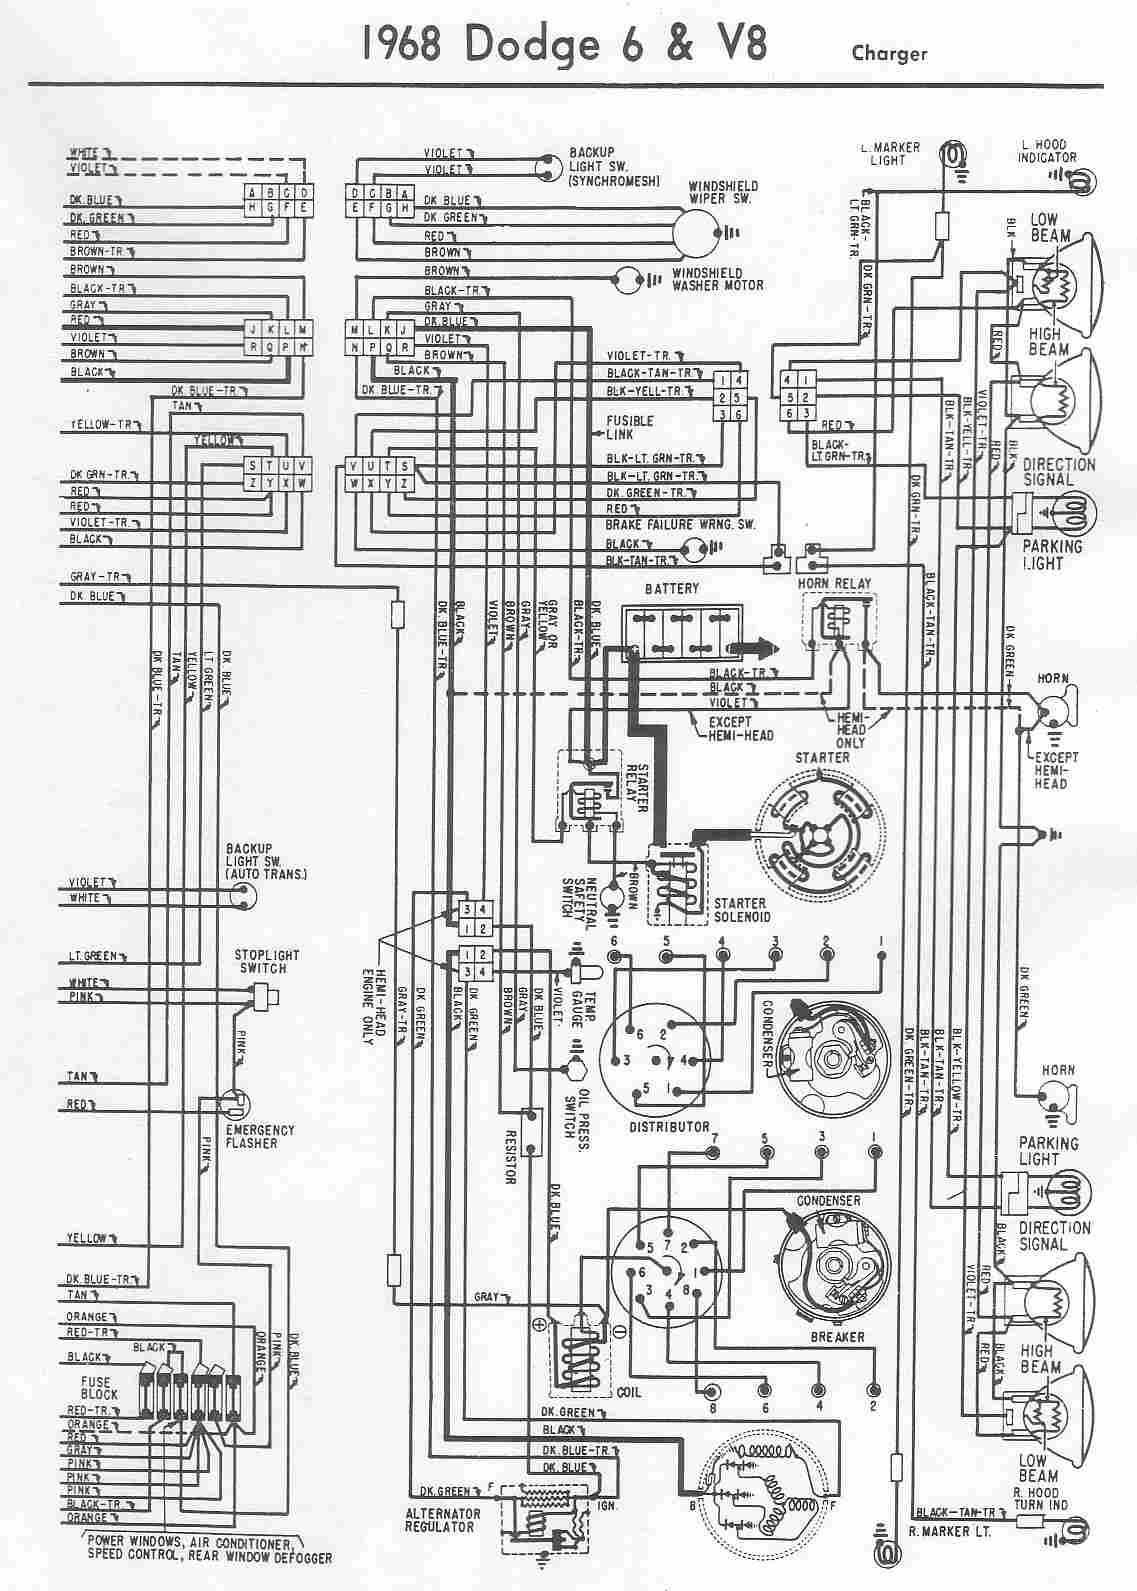 1970 dodge magnum engine diagram [ 1137 x 1591 Pixel ]